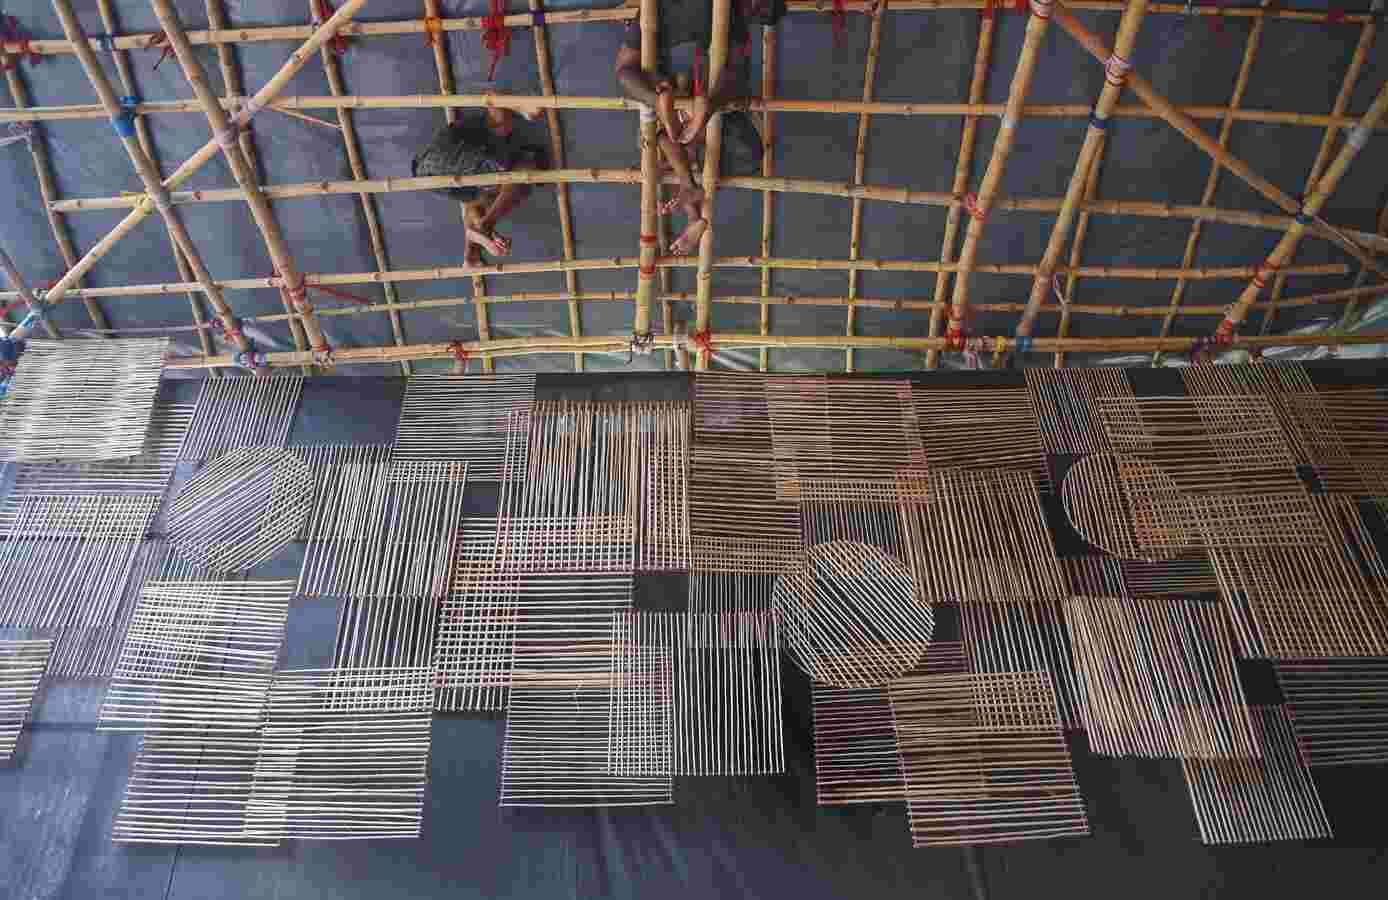 THAT TIME OF THE YEAR: Artisans weave the ceiling of a Durga Puja pandal from cane in Kolkata on Saturday, September 25. The one worry for the city this year is whether the later-than-usual rains will play spoilsport on Puja days